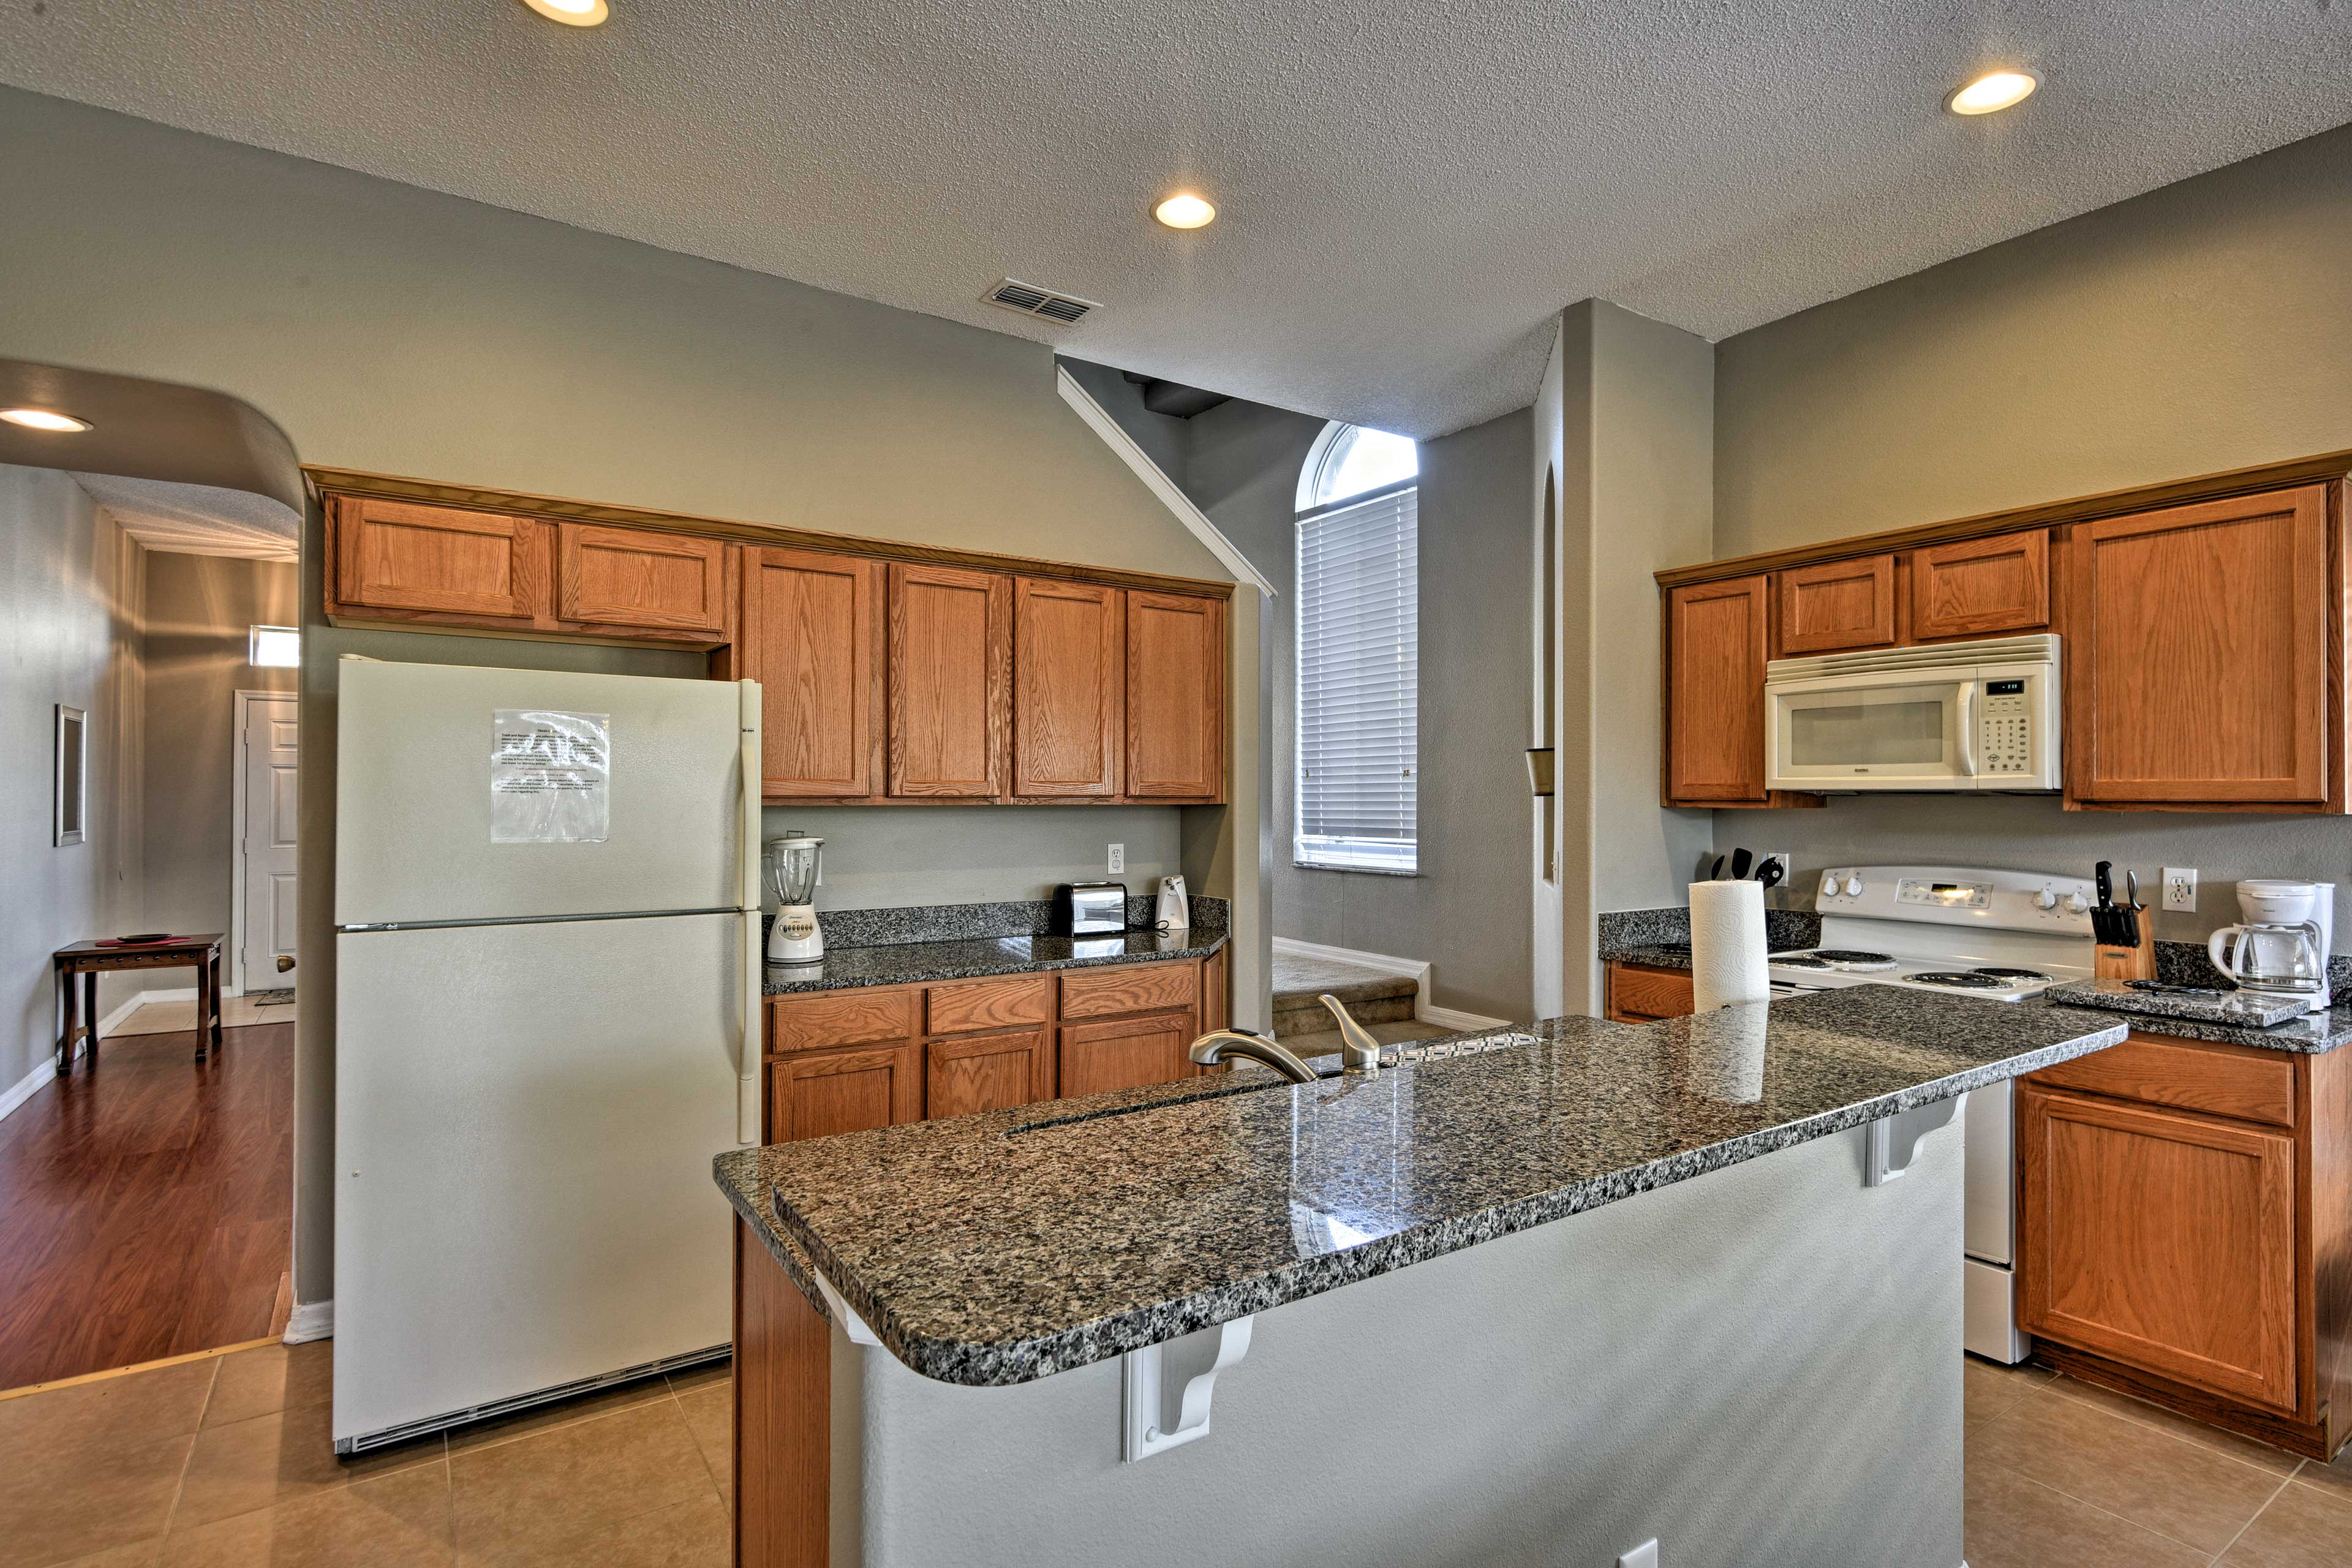 Cooking for 10 is effortless in this fully equipped kitchen.